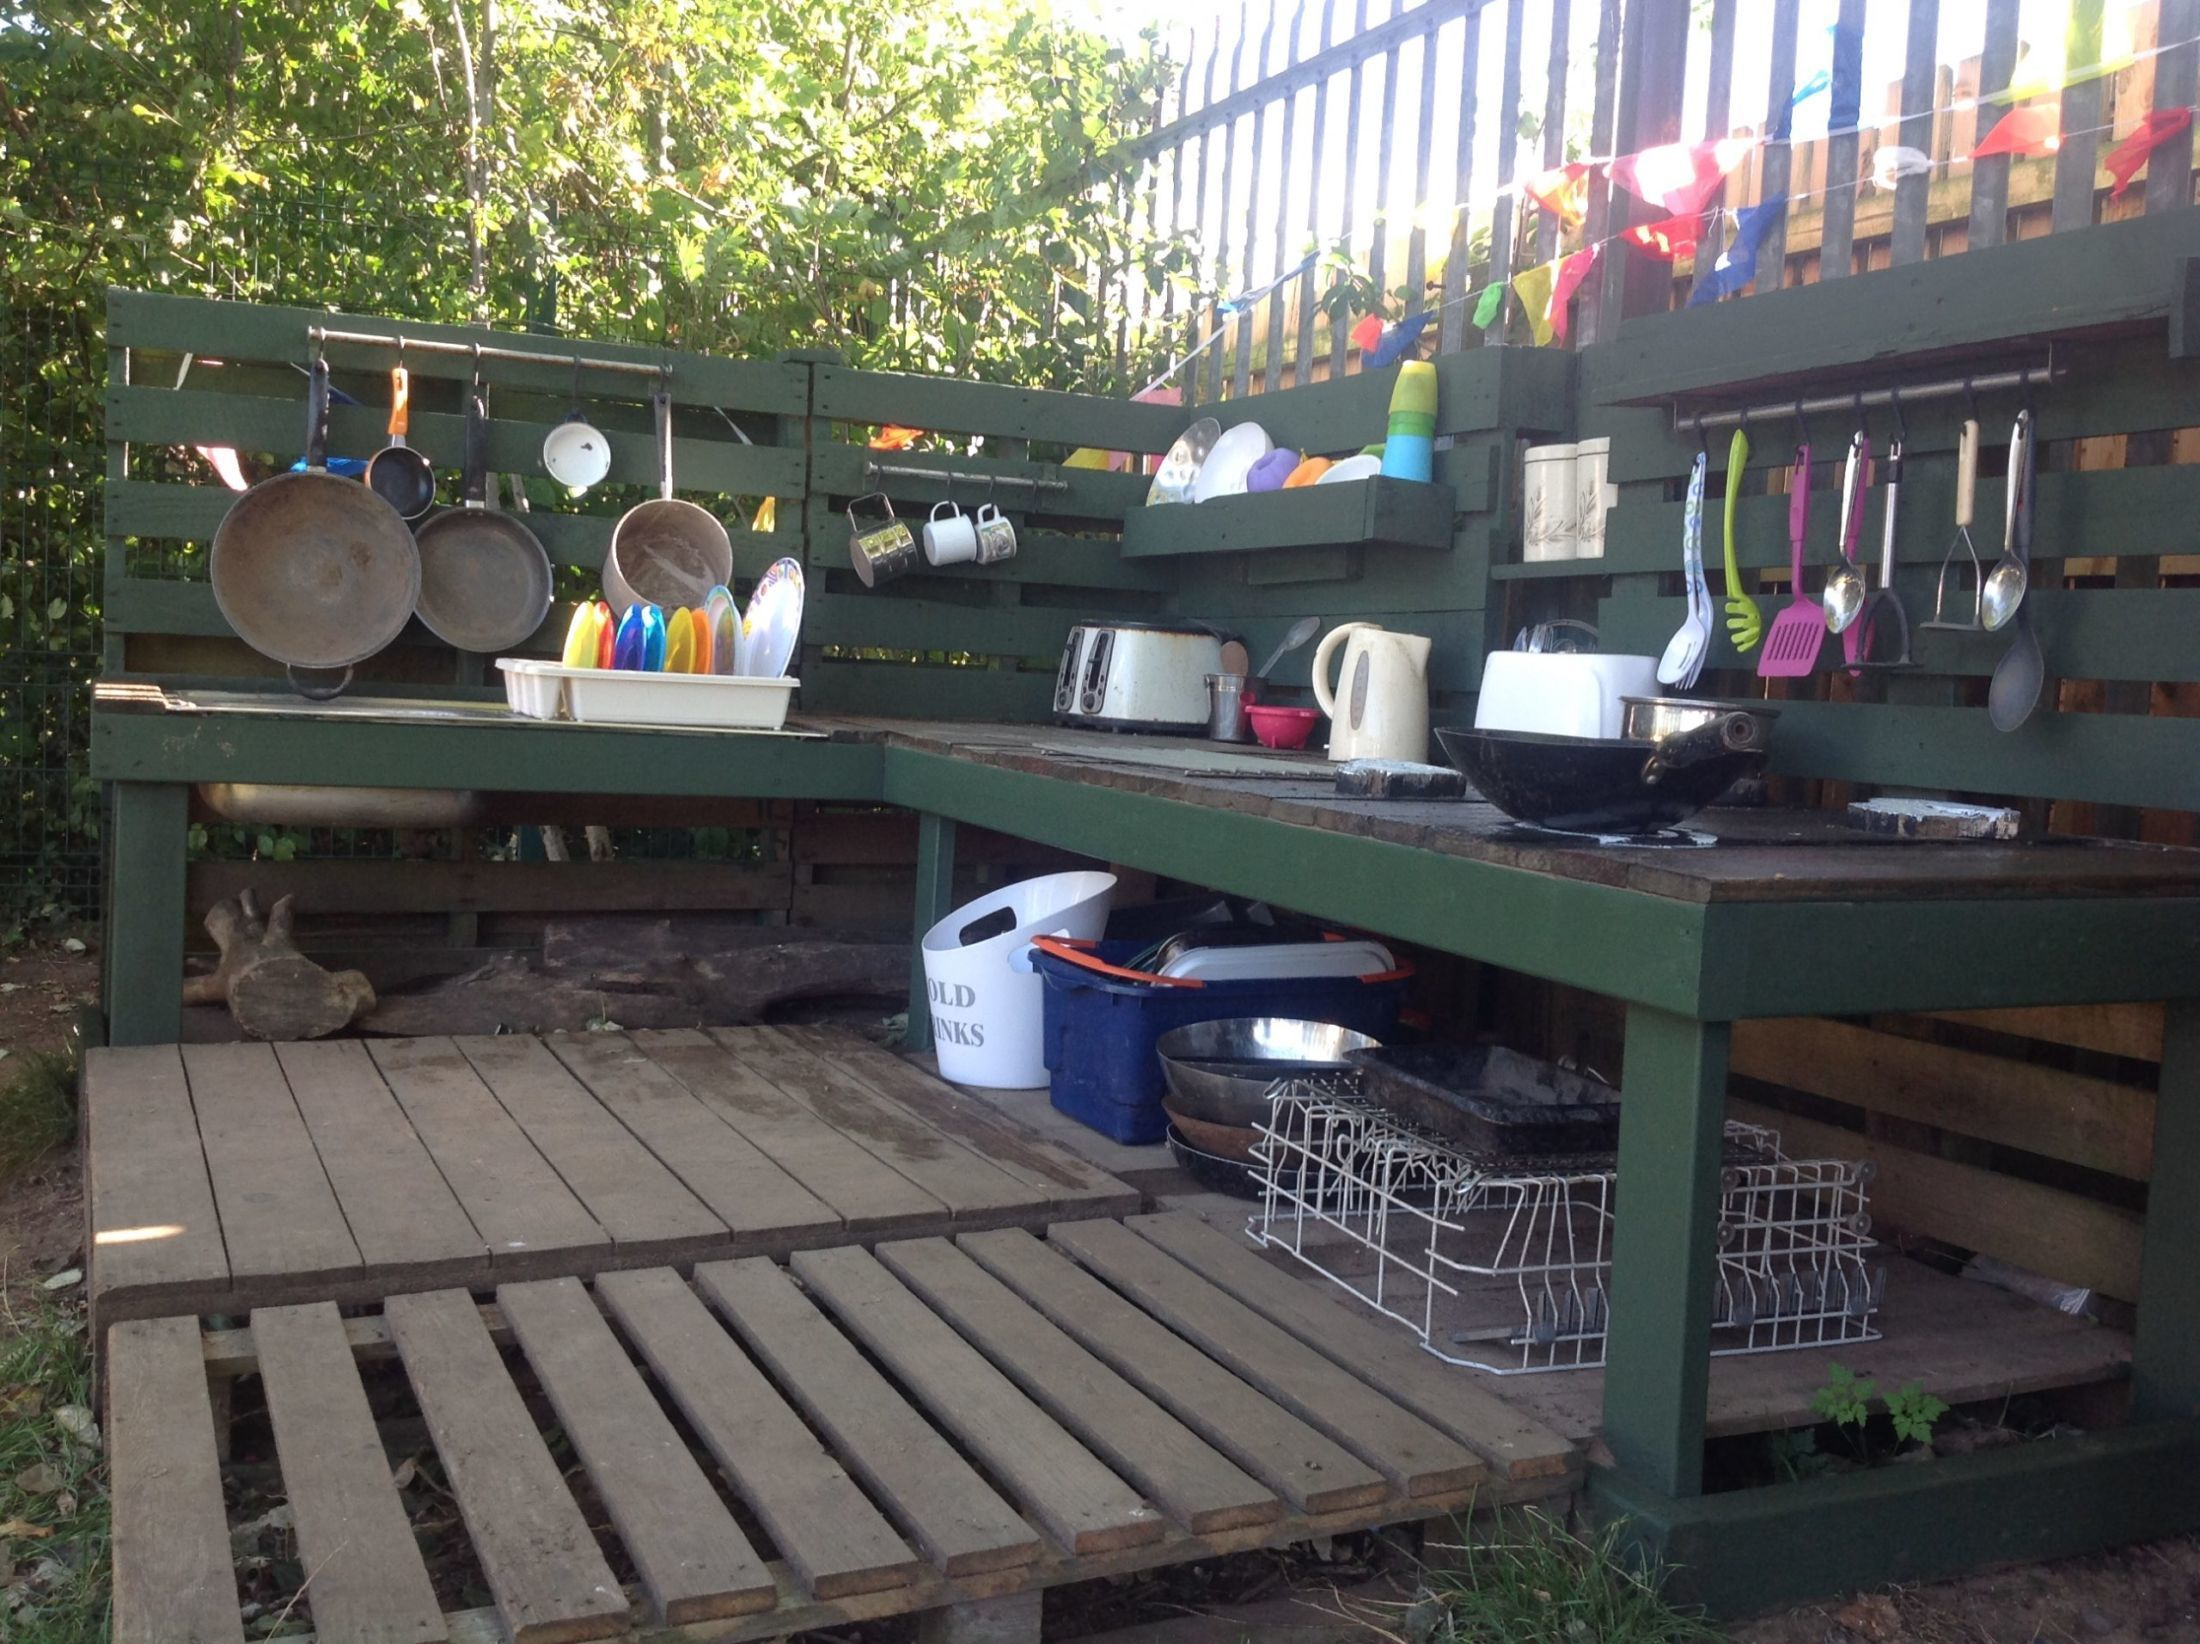 2 wooden palletts on the ground, 2 mud kitchen benches and lots of kitchen utensils